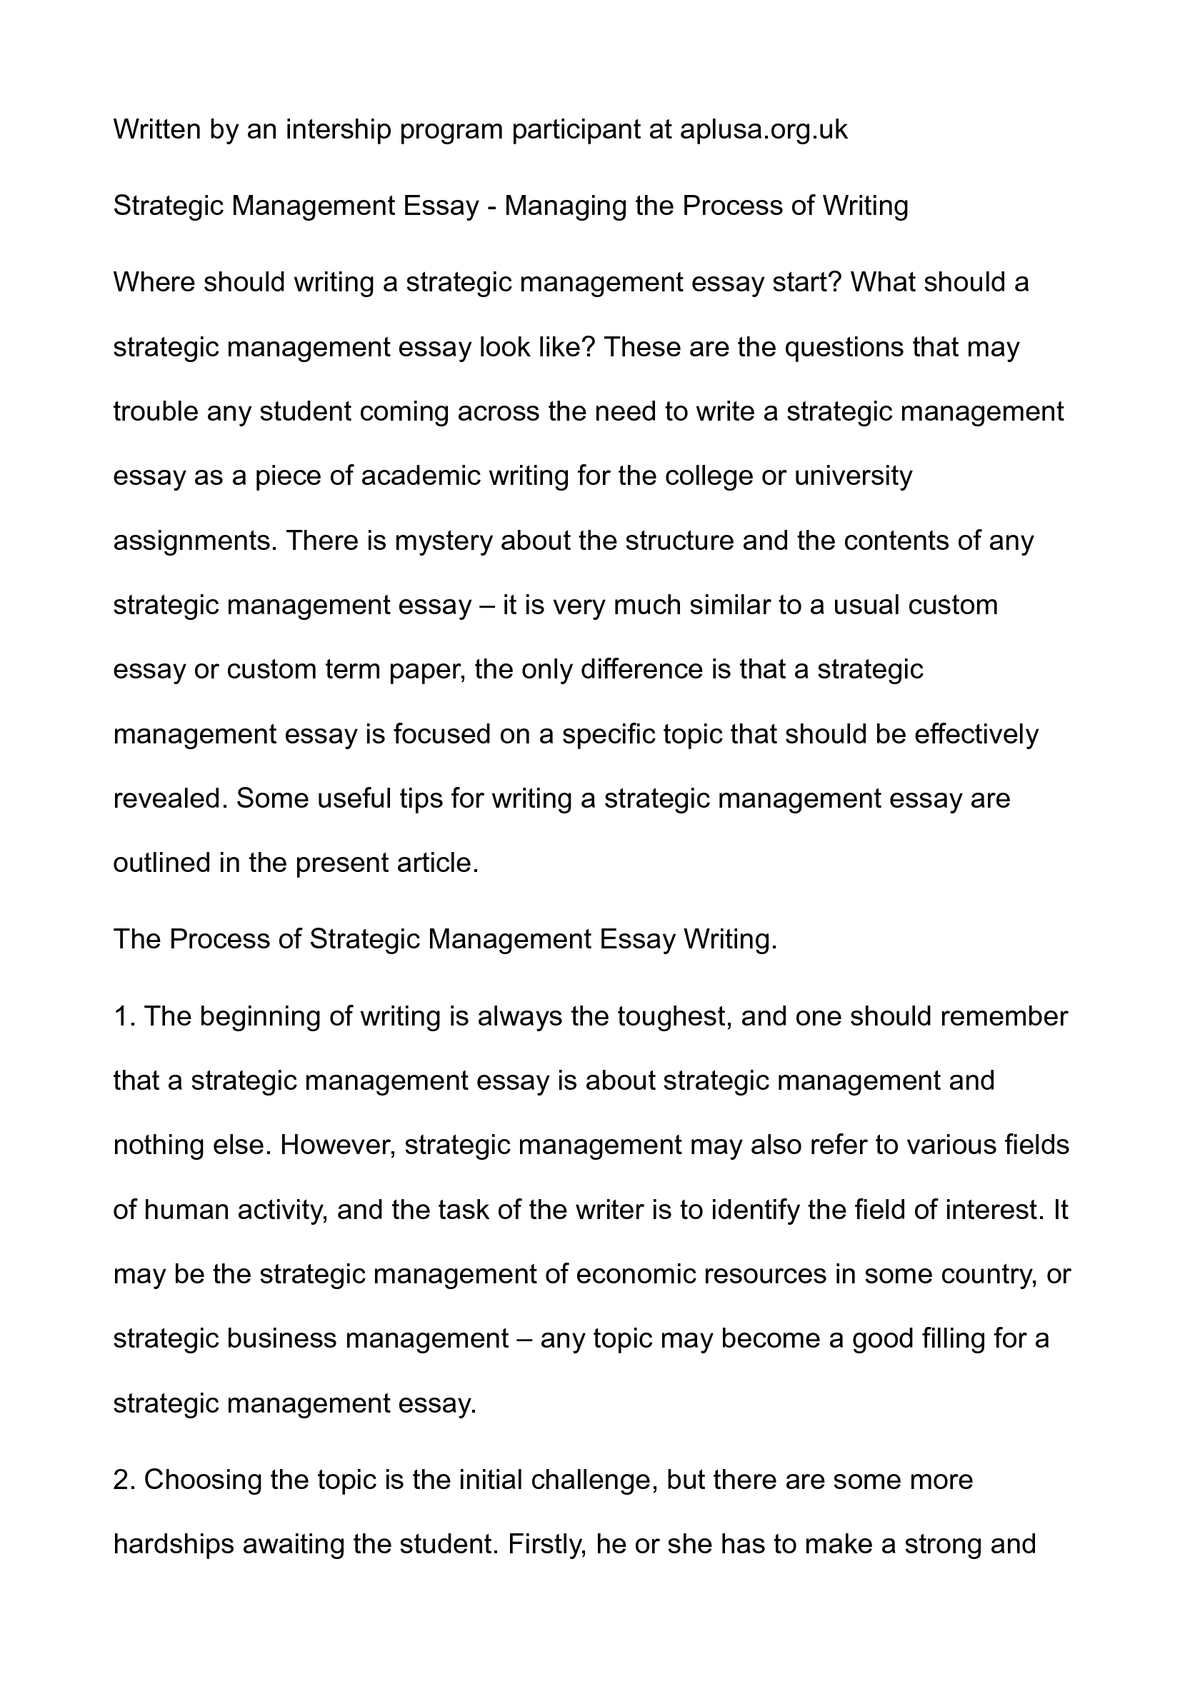 Christmas Essay In English  Topics Of Essays For High School Students also Essay On Pollution In English Calamo  Strategic Management Essay  Managing The Process  Science Essay